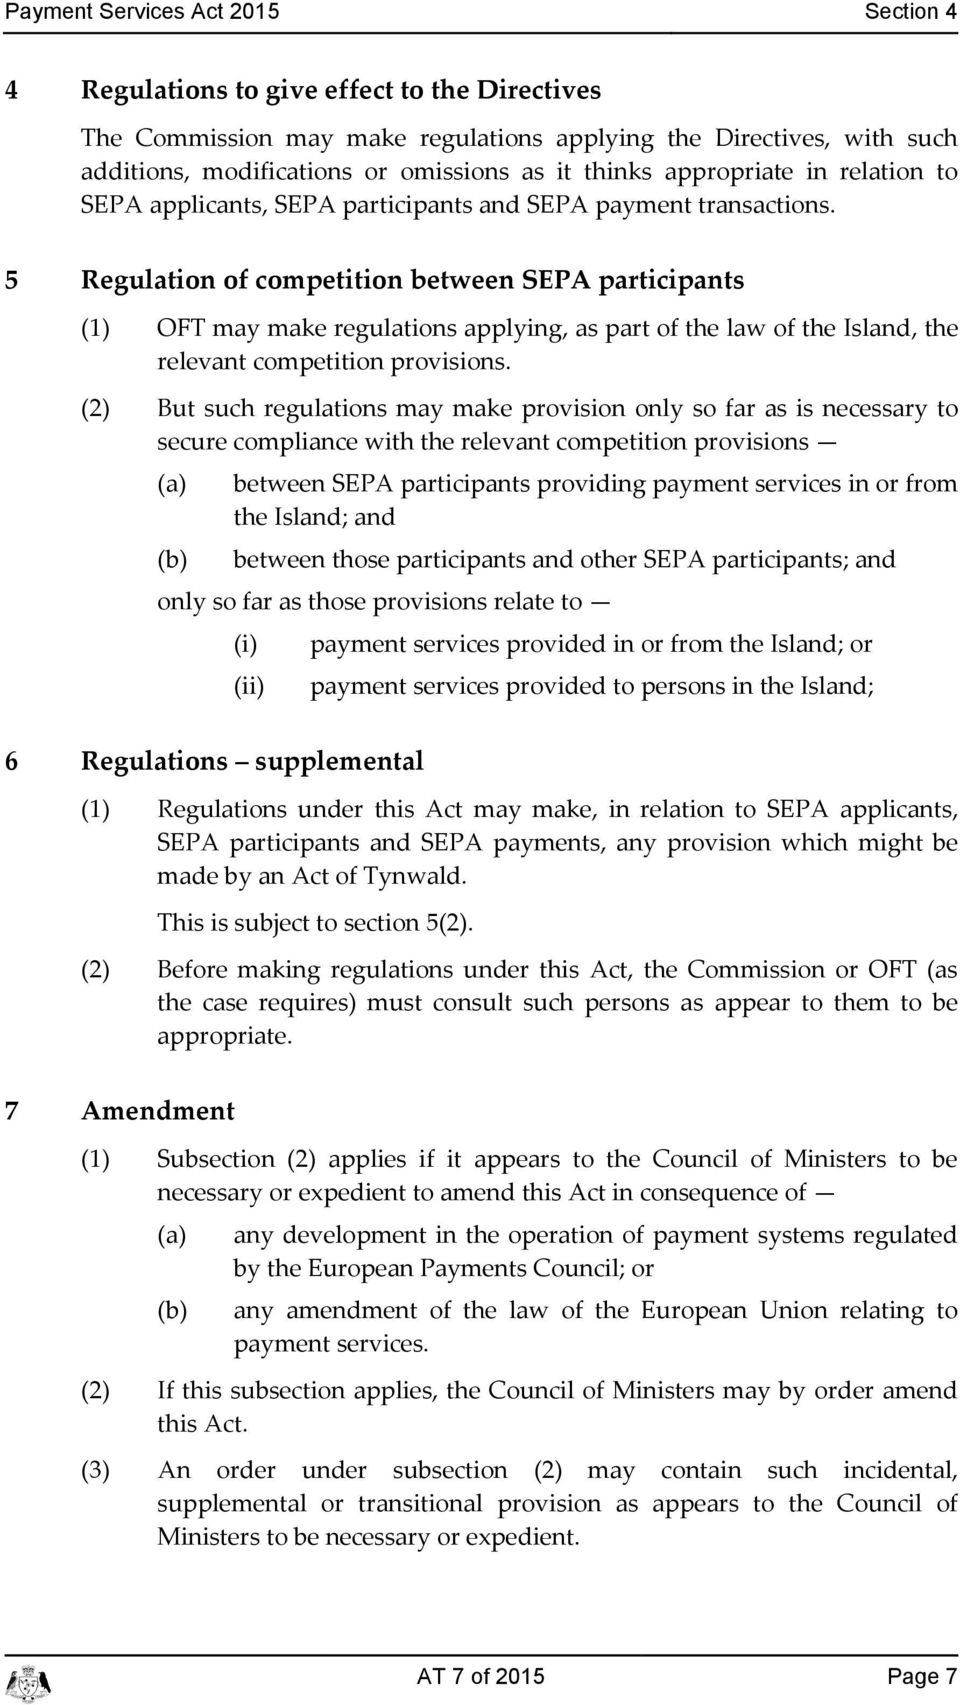 5 Regulation of ompetition between SEPA partiipants (1) OFT may make regulations applying, as part of the law of the Island, the relevant ompetition provisions.